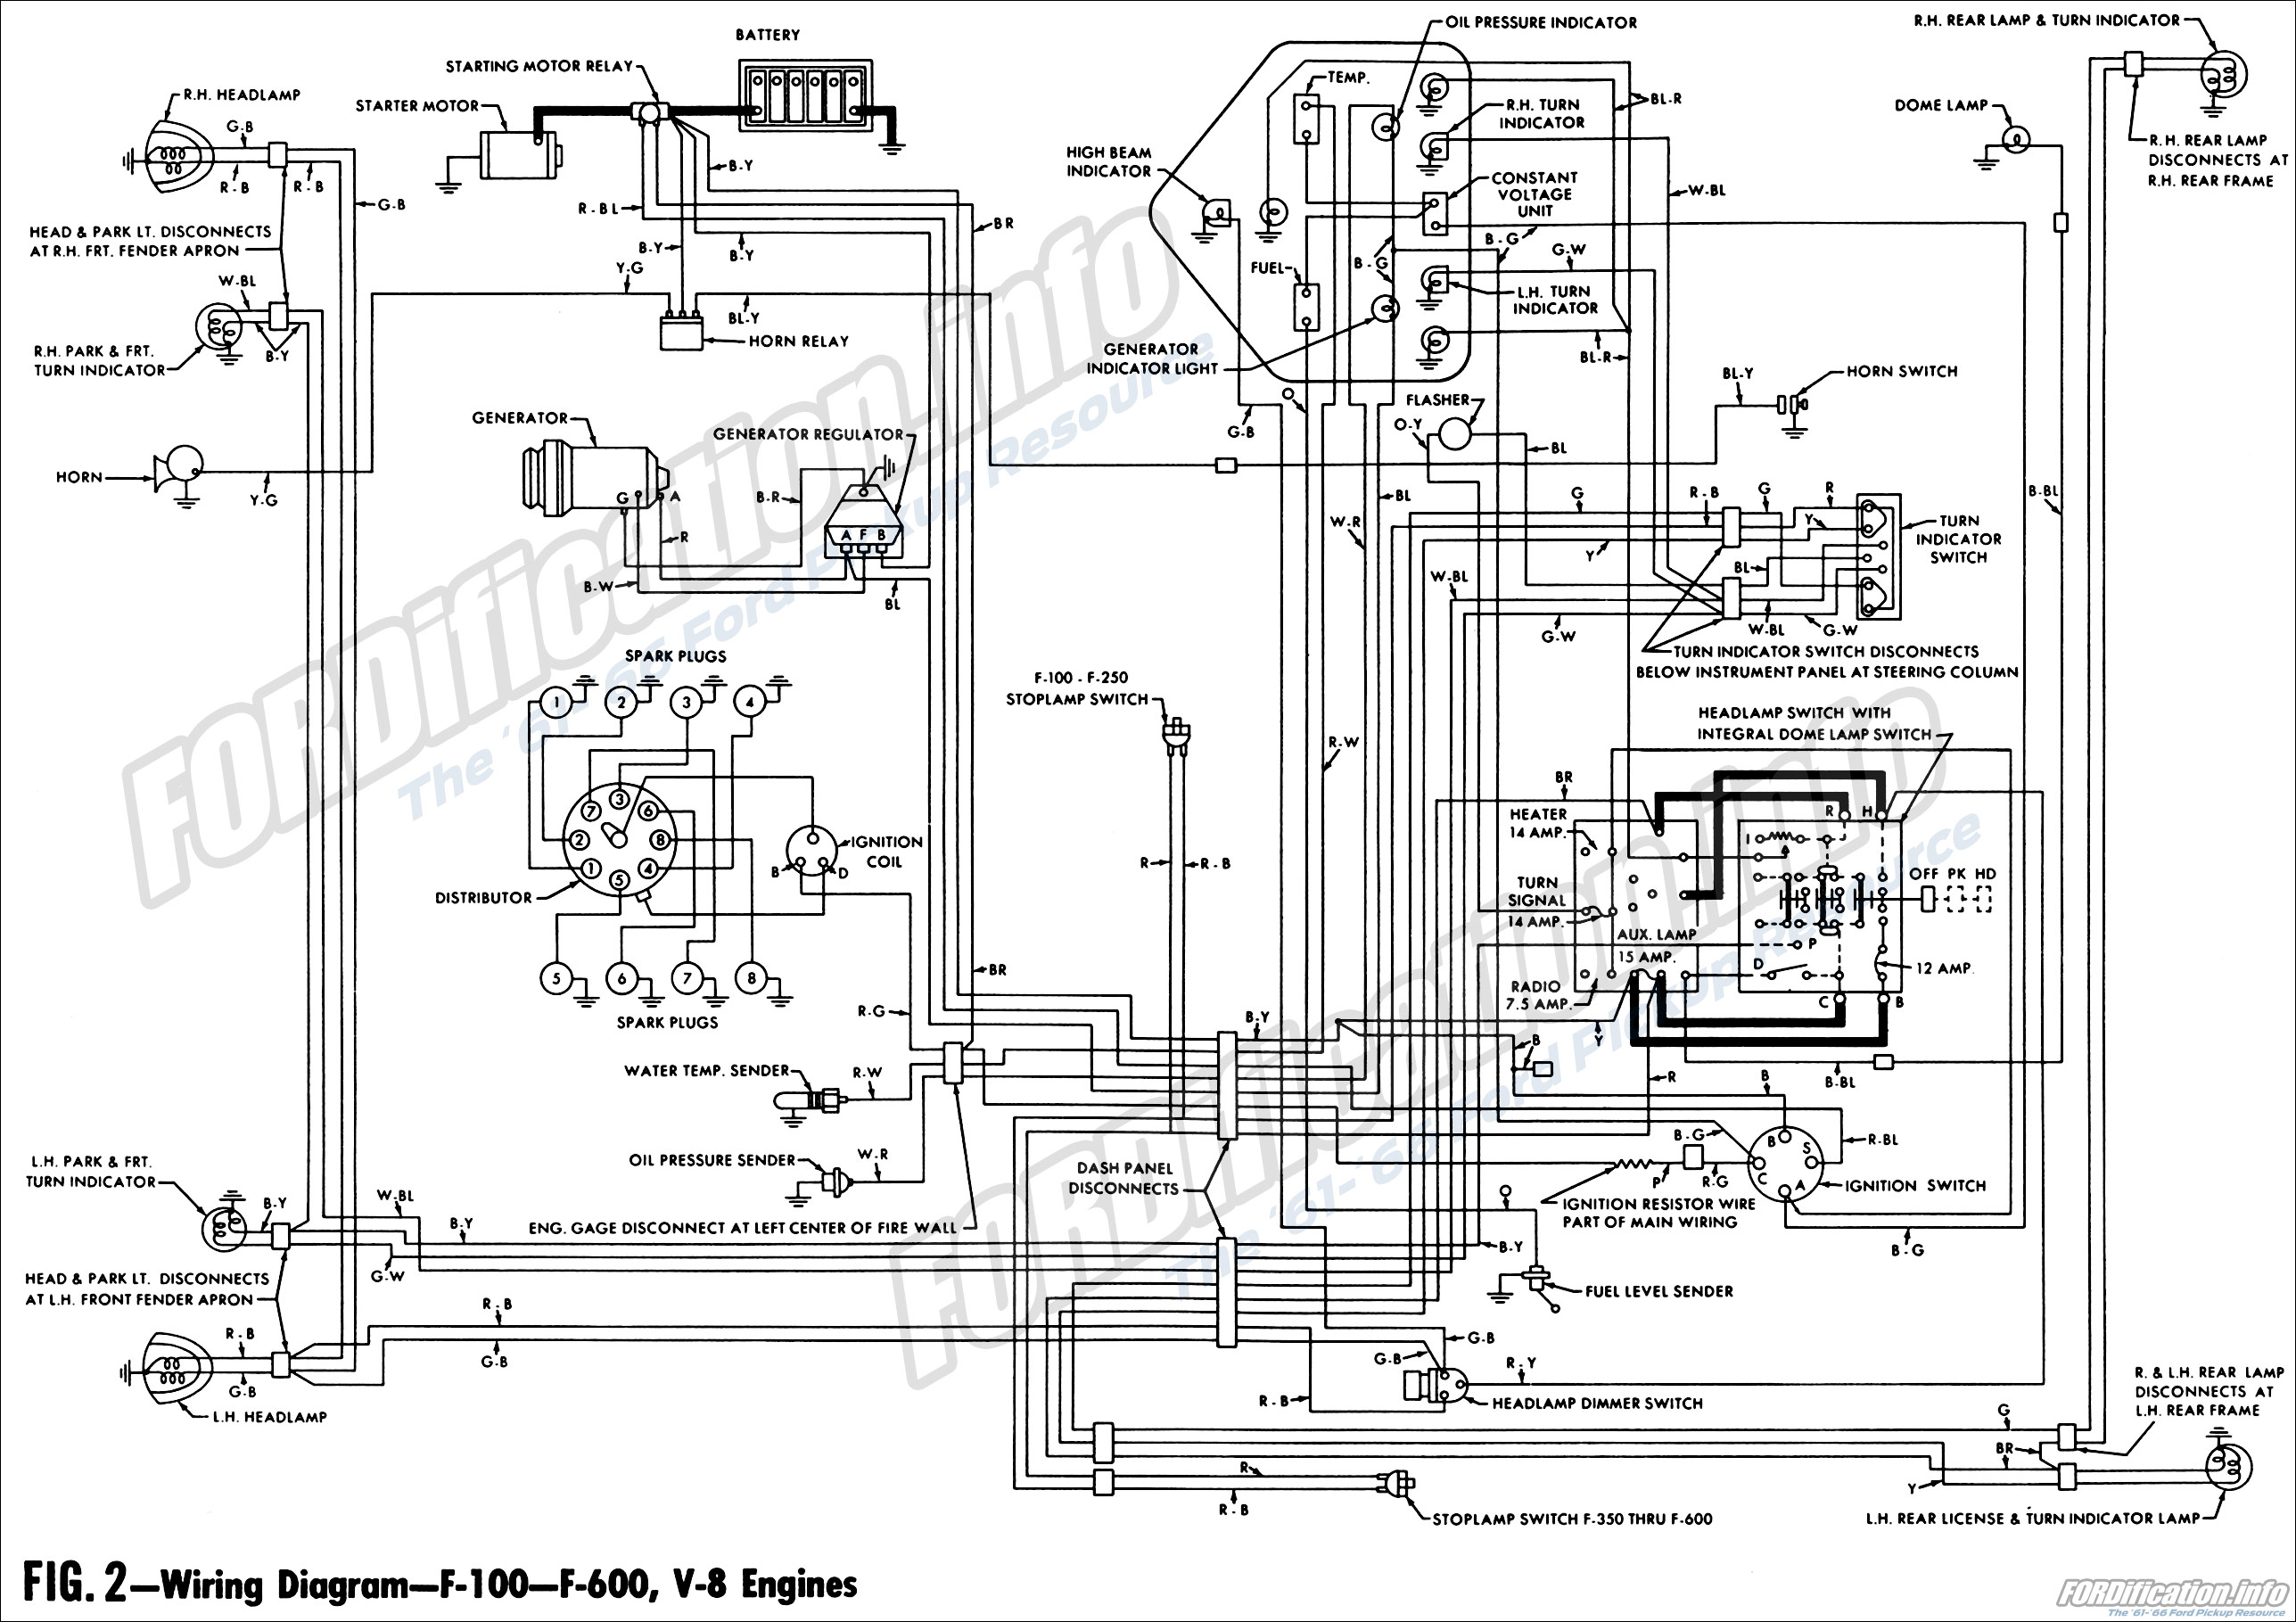 66 corvair wiring diagram 1961 ford truck wiring diagrams - fordification.info - the ...